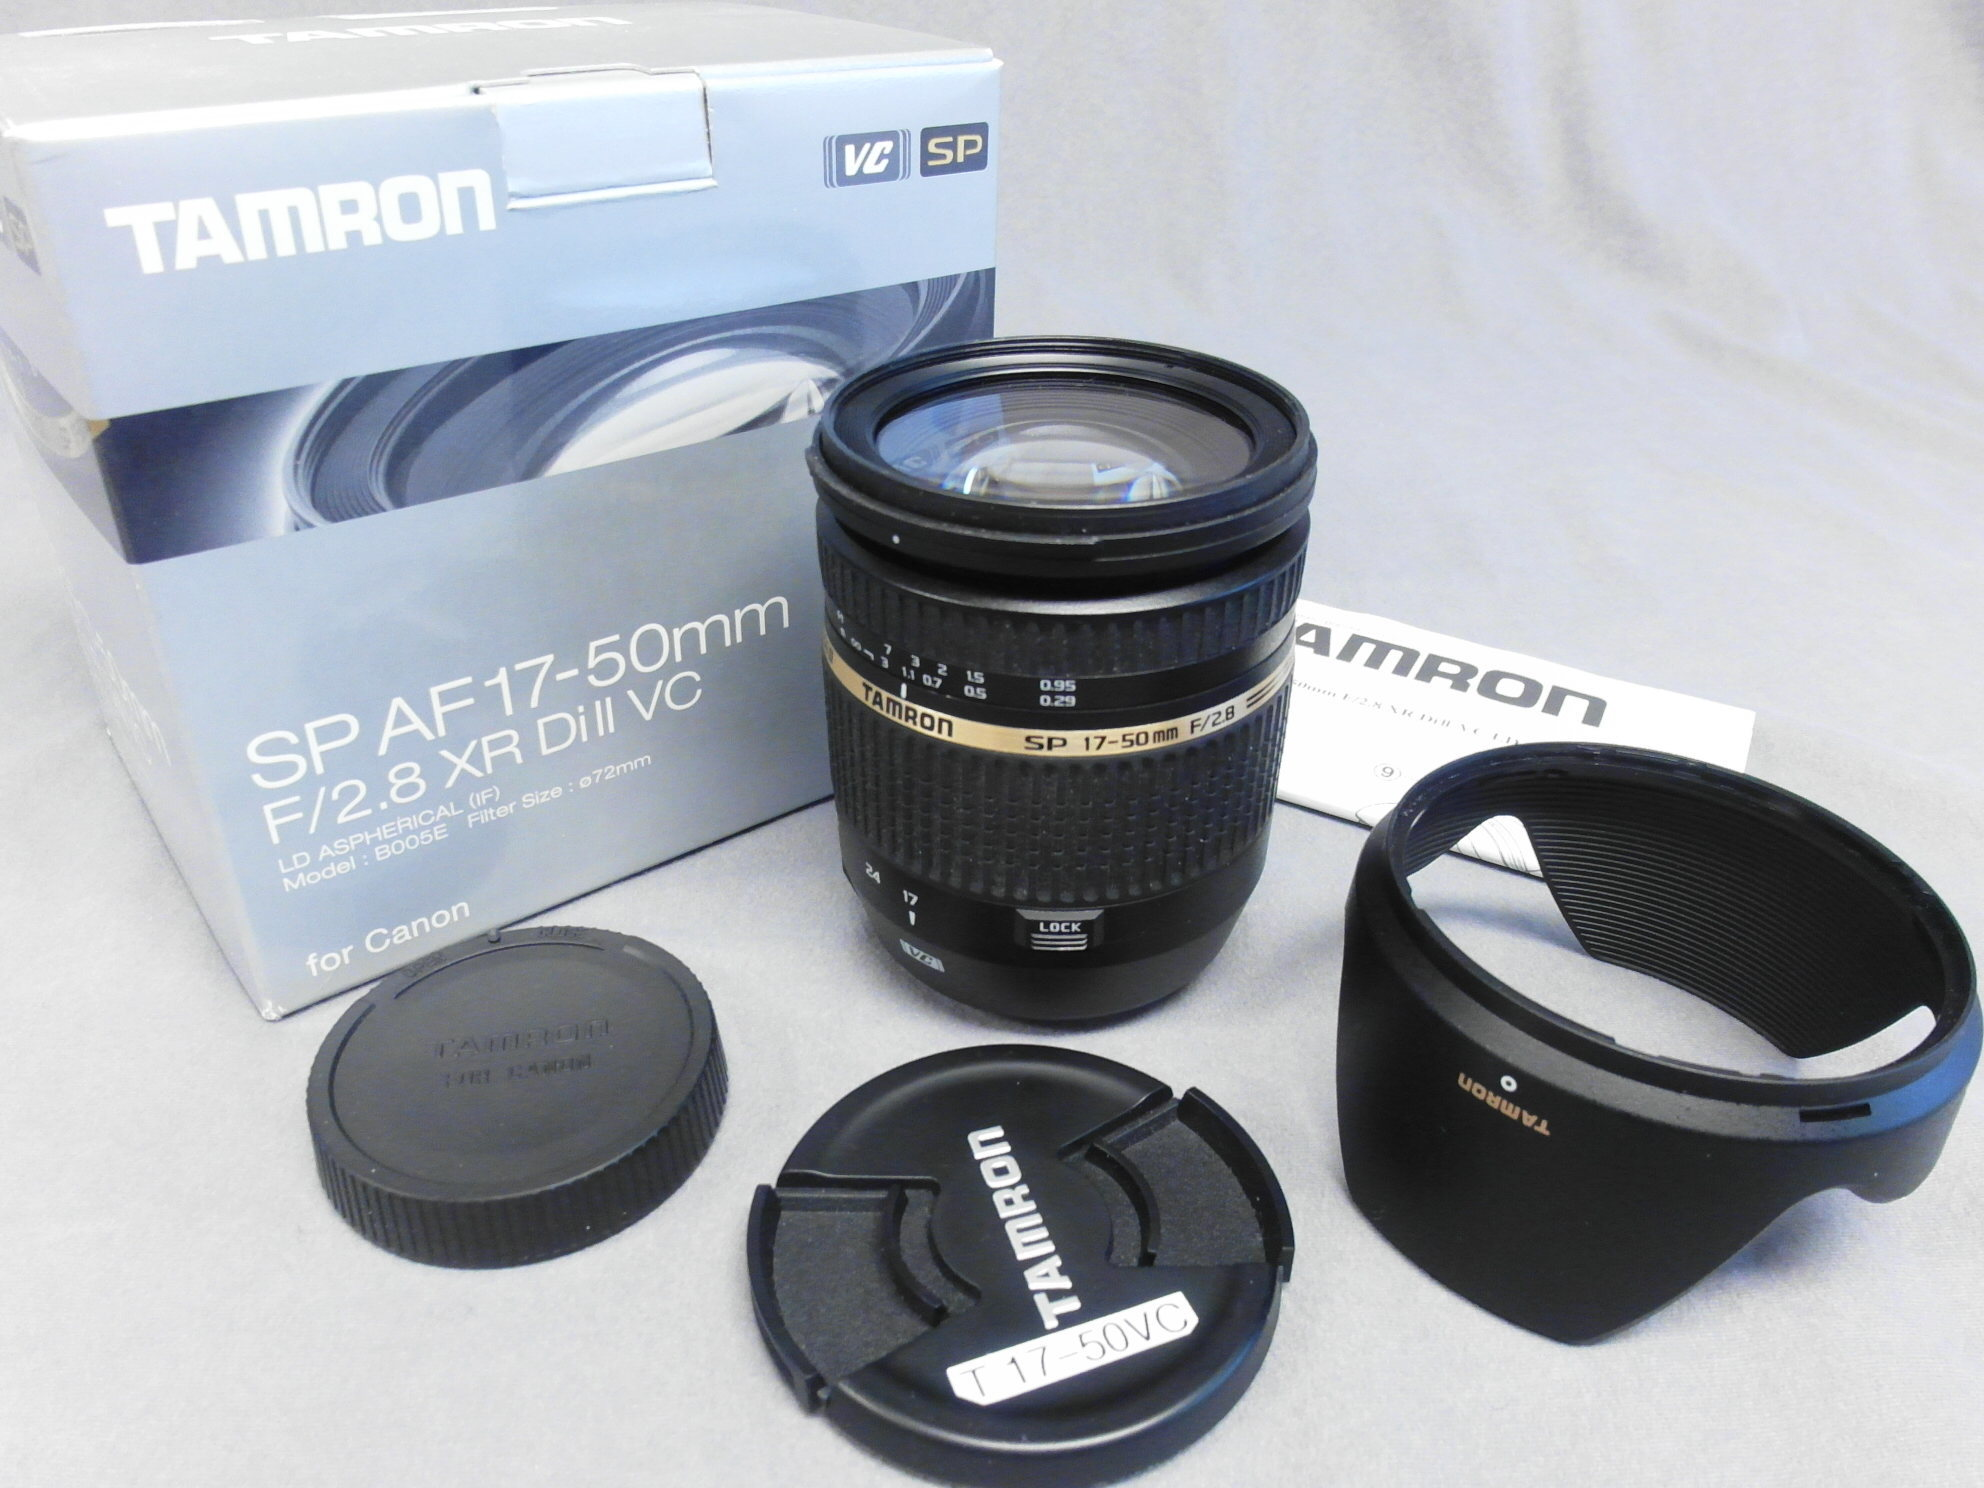 Sold Tamron 17 50mm Vc Canon Fm Forums For Sp Af F 28 Xr Di Ii Ld Aspherical If Mar 19